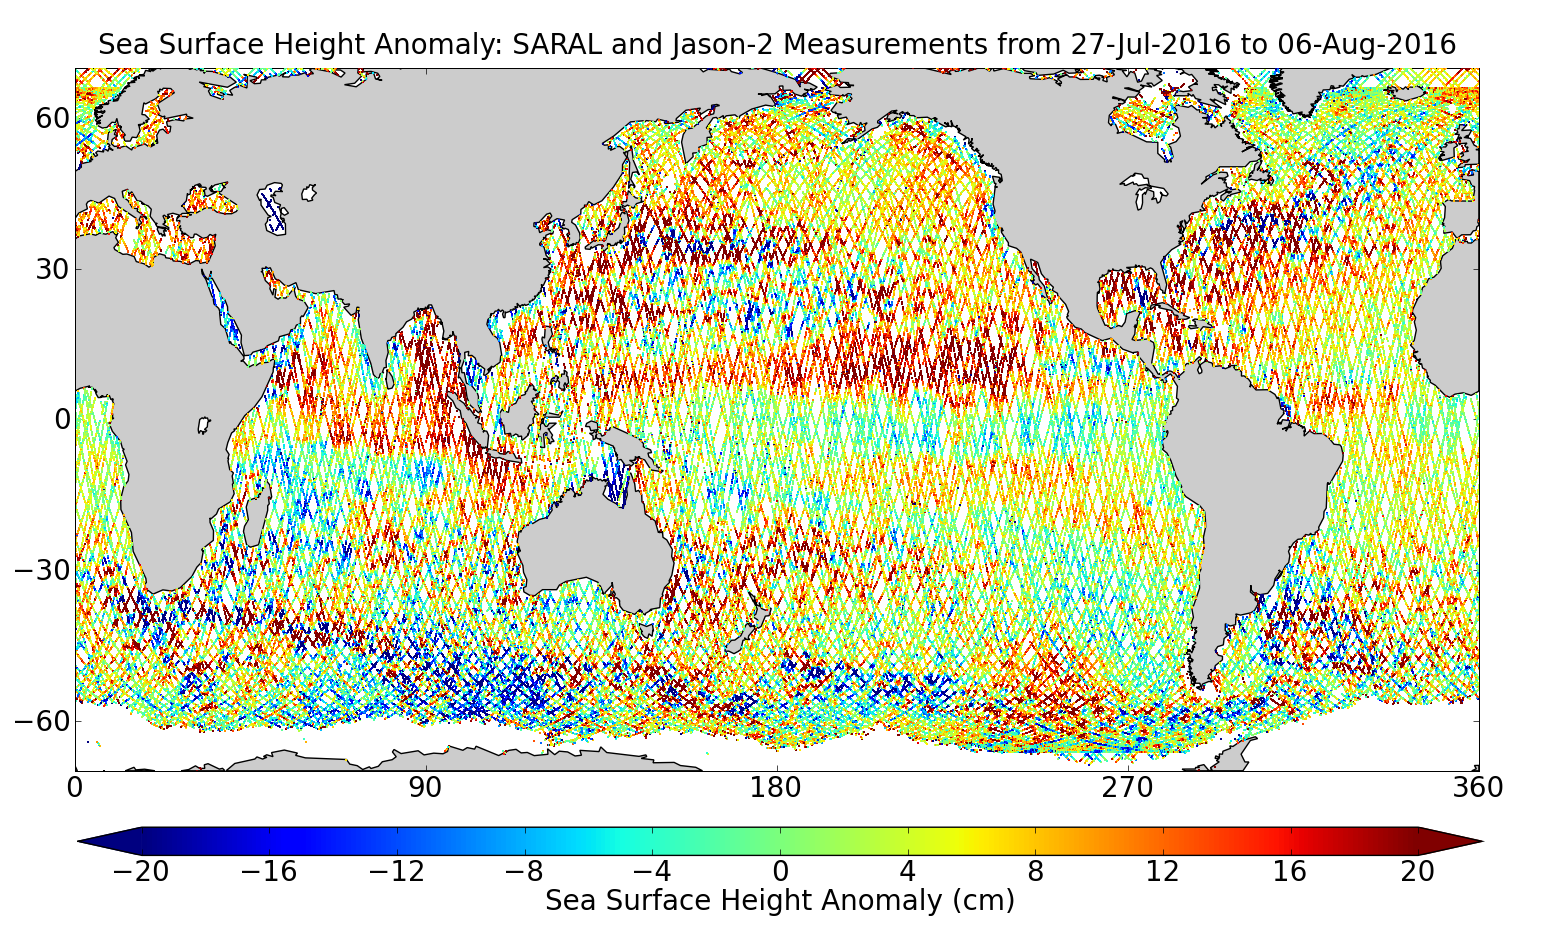 Sea Surface Height Anomaly: SARAL and Jason-2 Measurements from 27-Jul-2016 to 06-Aug-2016